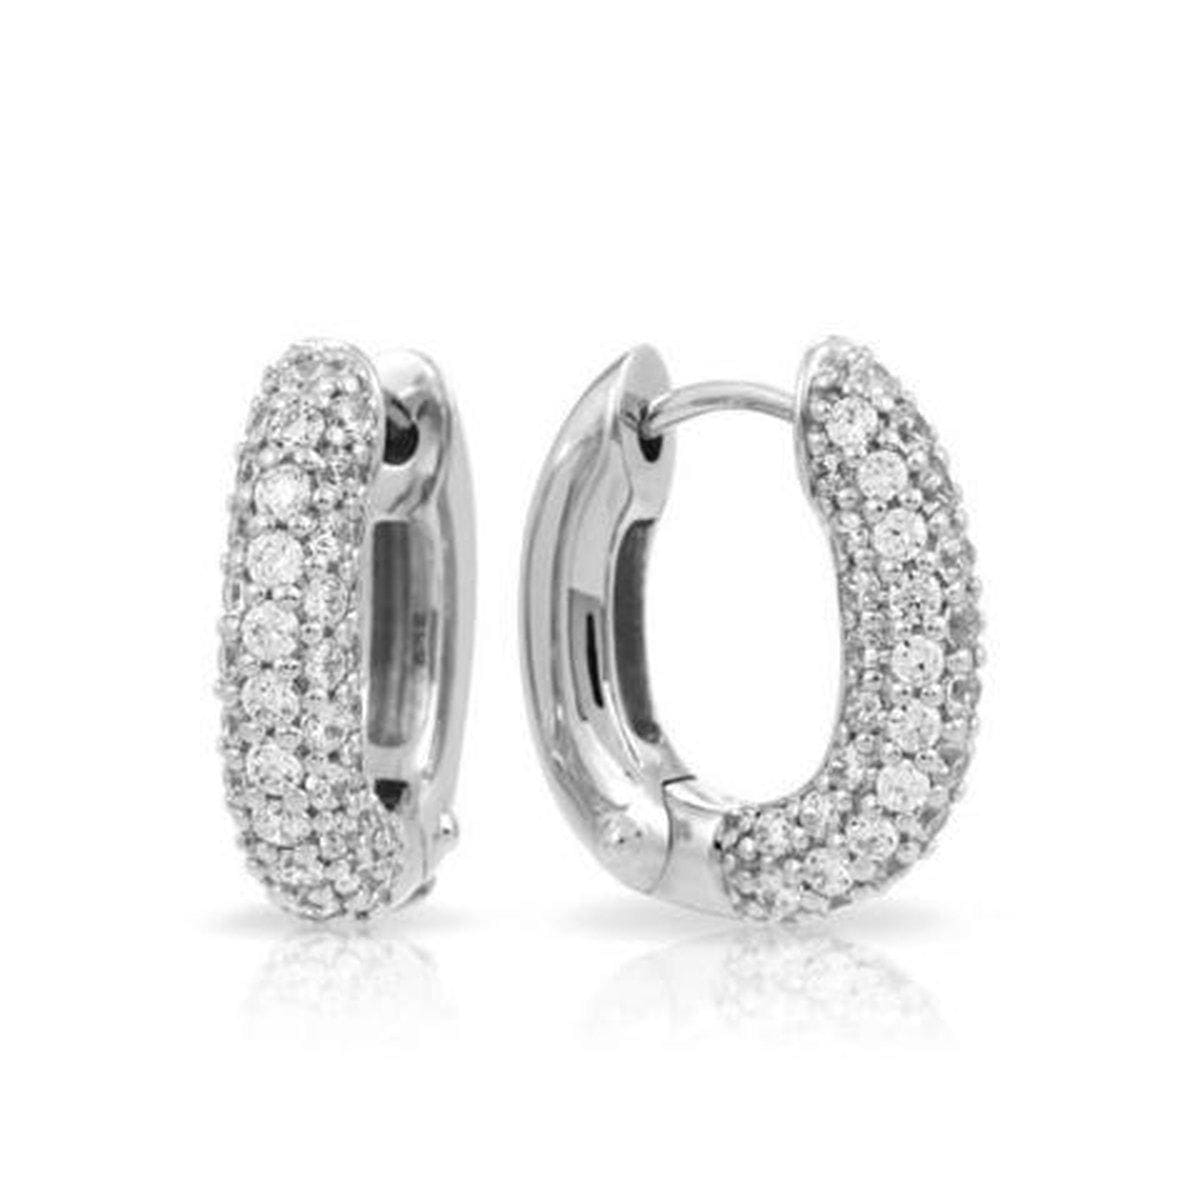 Pave Thin White Earrings-Belle Etoile-Renee Taylor Gallery